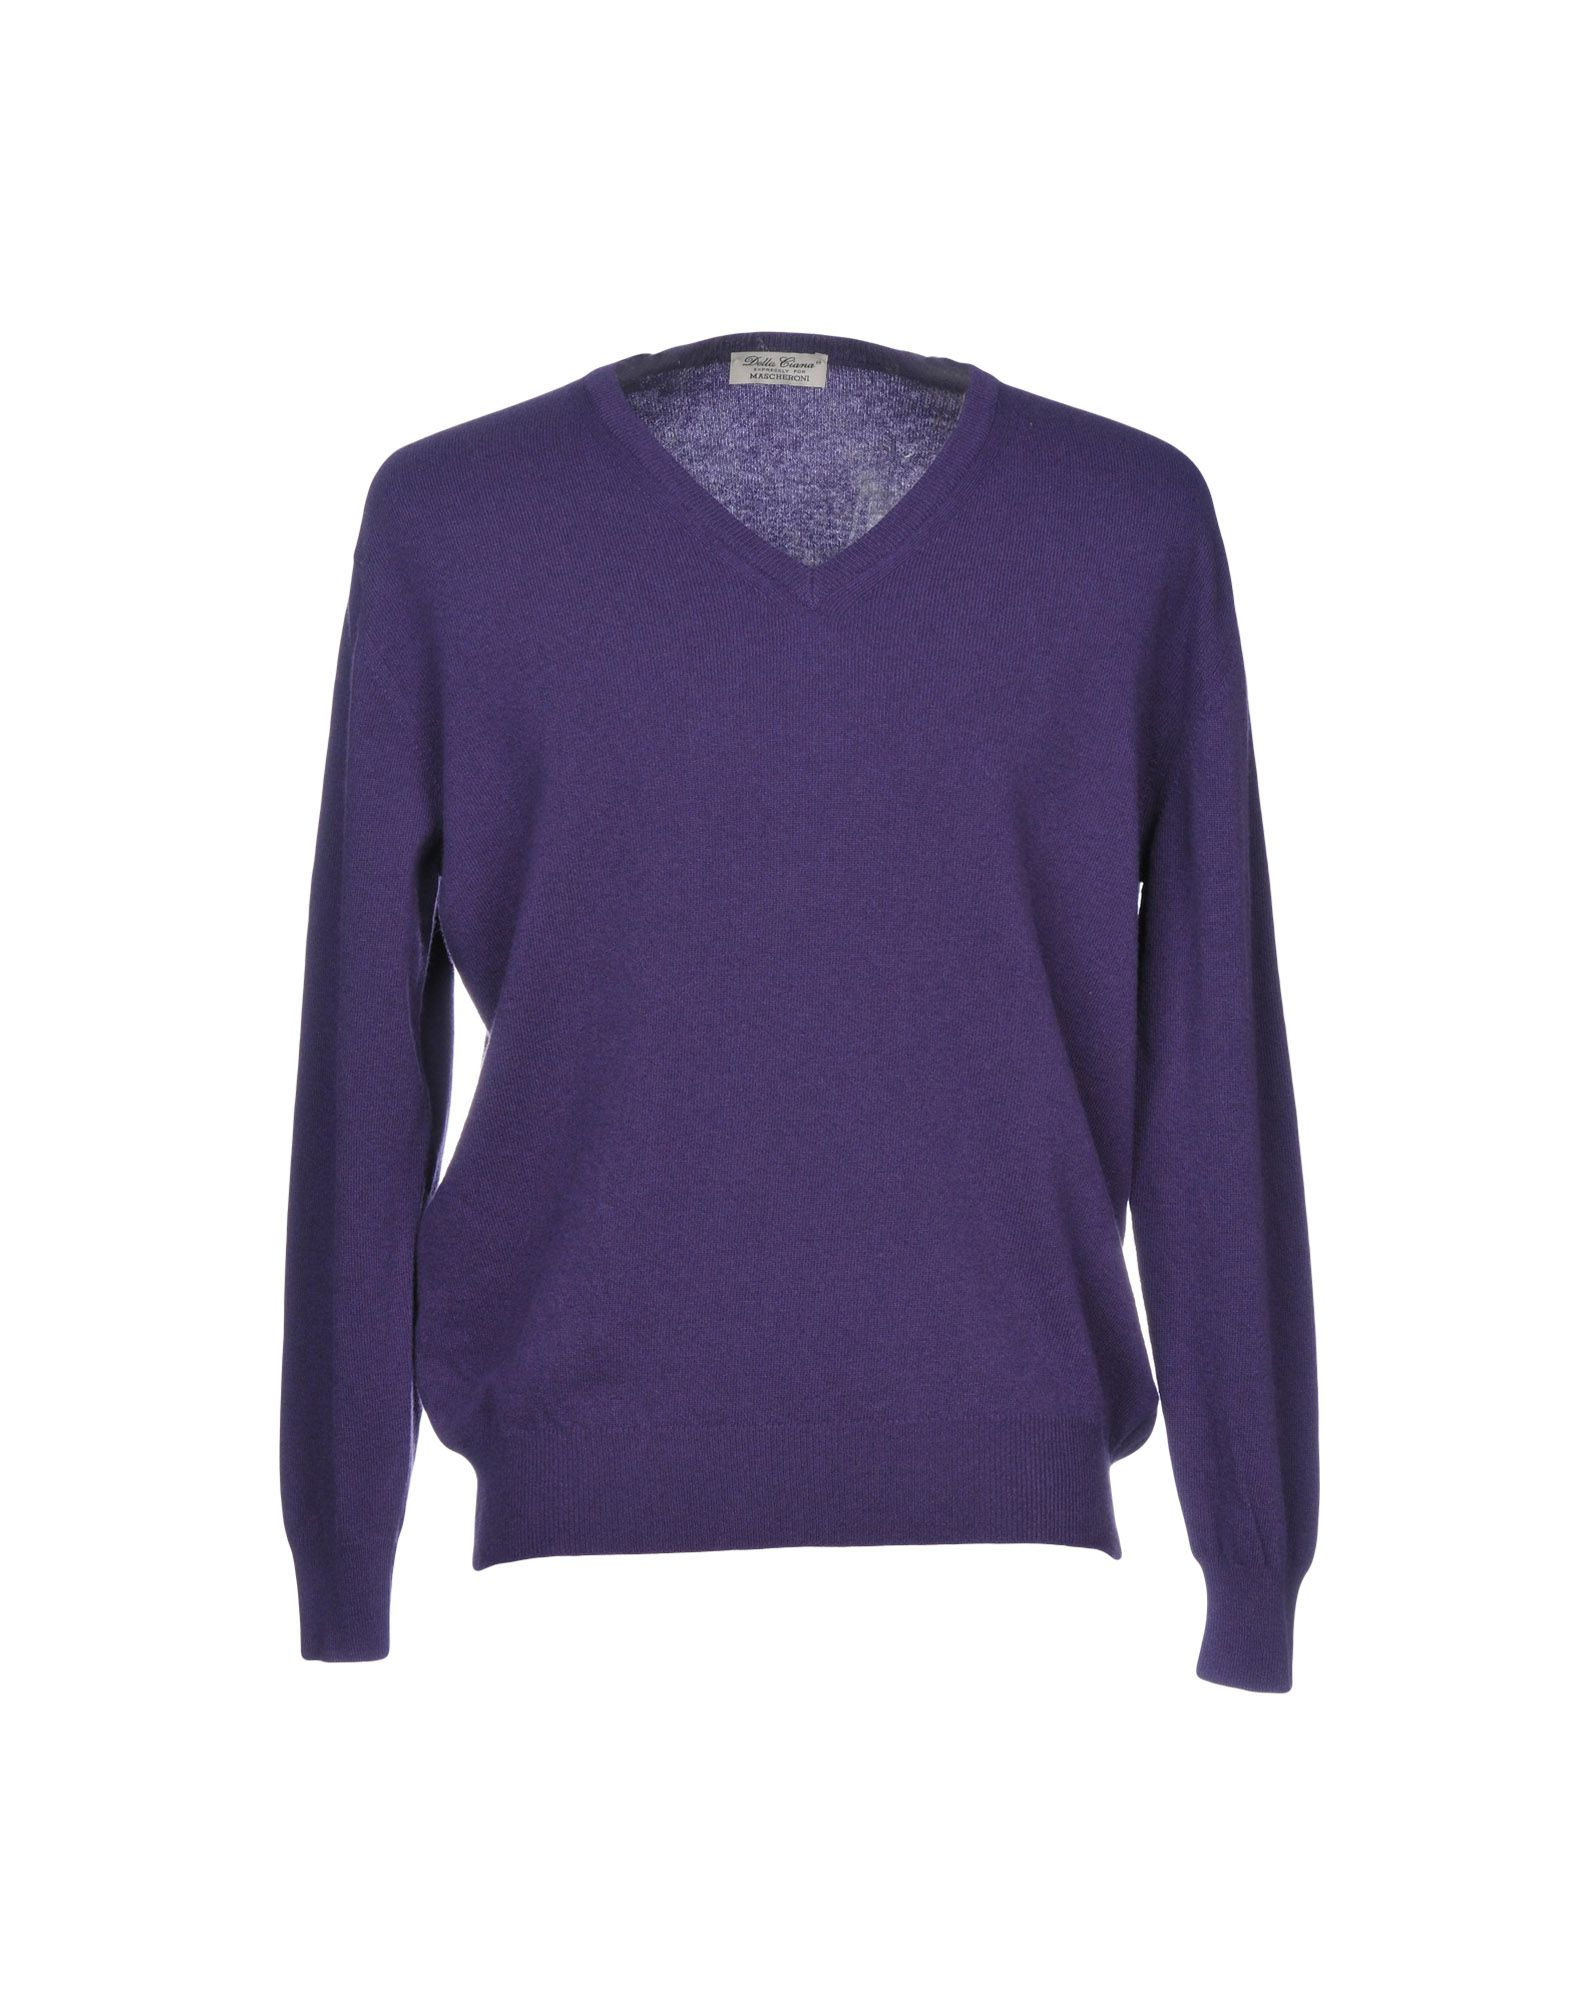 DELLA CIANA Sweater in Purple